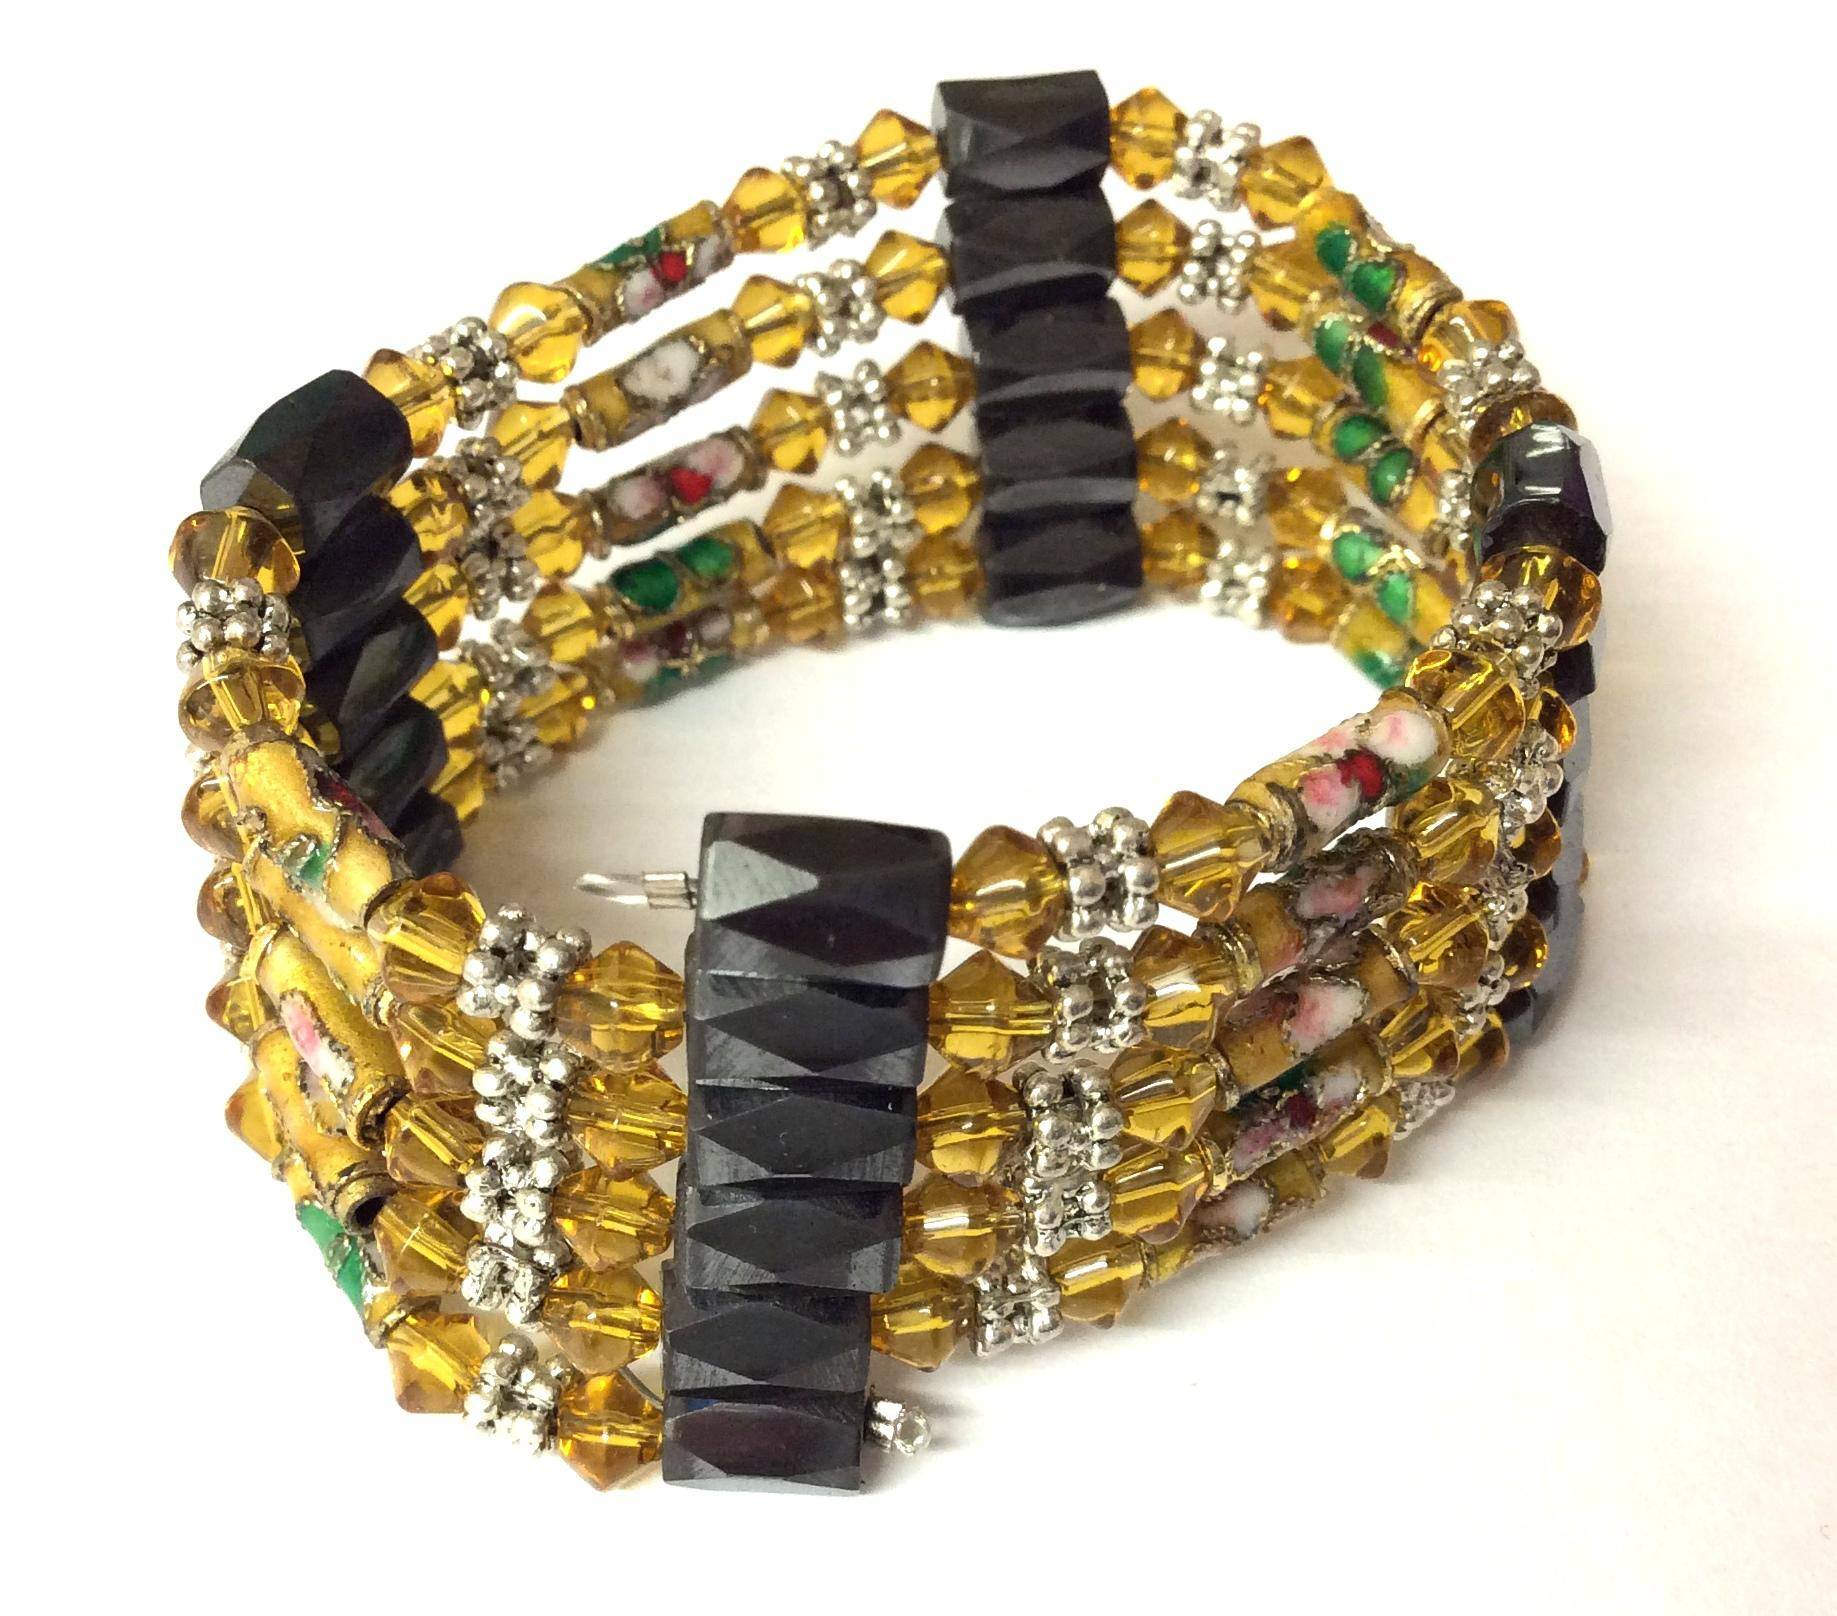 Magnetic Hematite Wrap Around Bracelet Amber